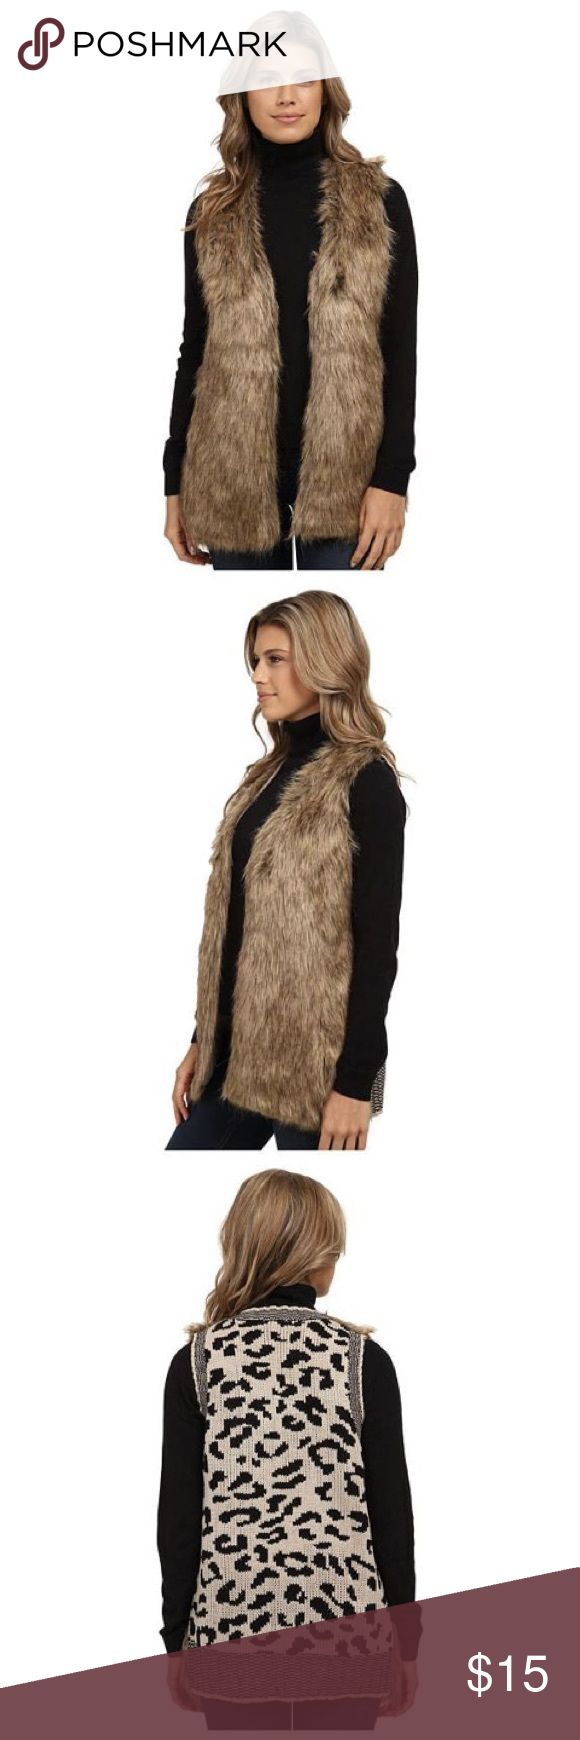 XOXO Leopard Sweater Back Fur Vest Women's Vest The ribbed details, leopard print designed XOXO Leopard Sweater Back Fur Vest is made from polyester, fur, acrylic. This XOXO vest will captivate and hold rapt attention to create a stalker-worthy look fit for poaching! 100% acrylic;Faux fur: 100% acrylic;Lining: 100% polyester. XOXO Jackets & Coats Vests